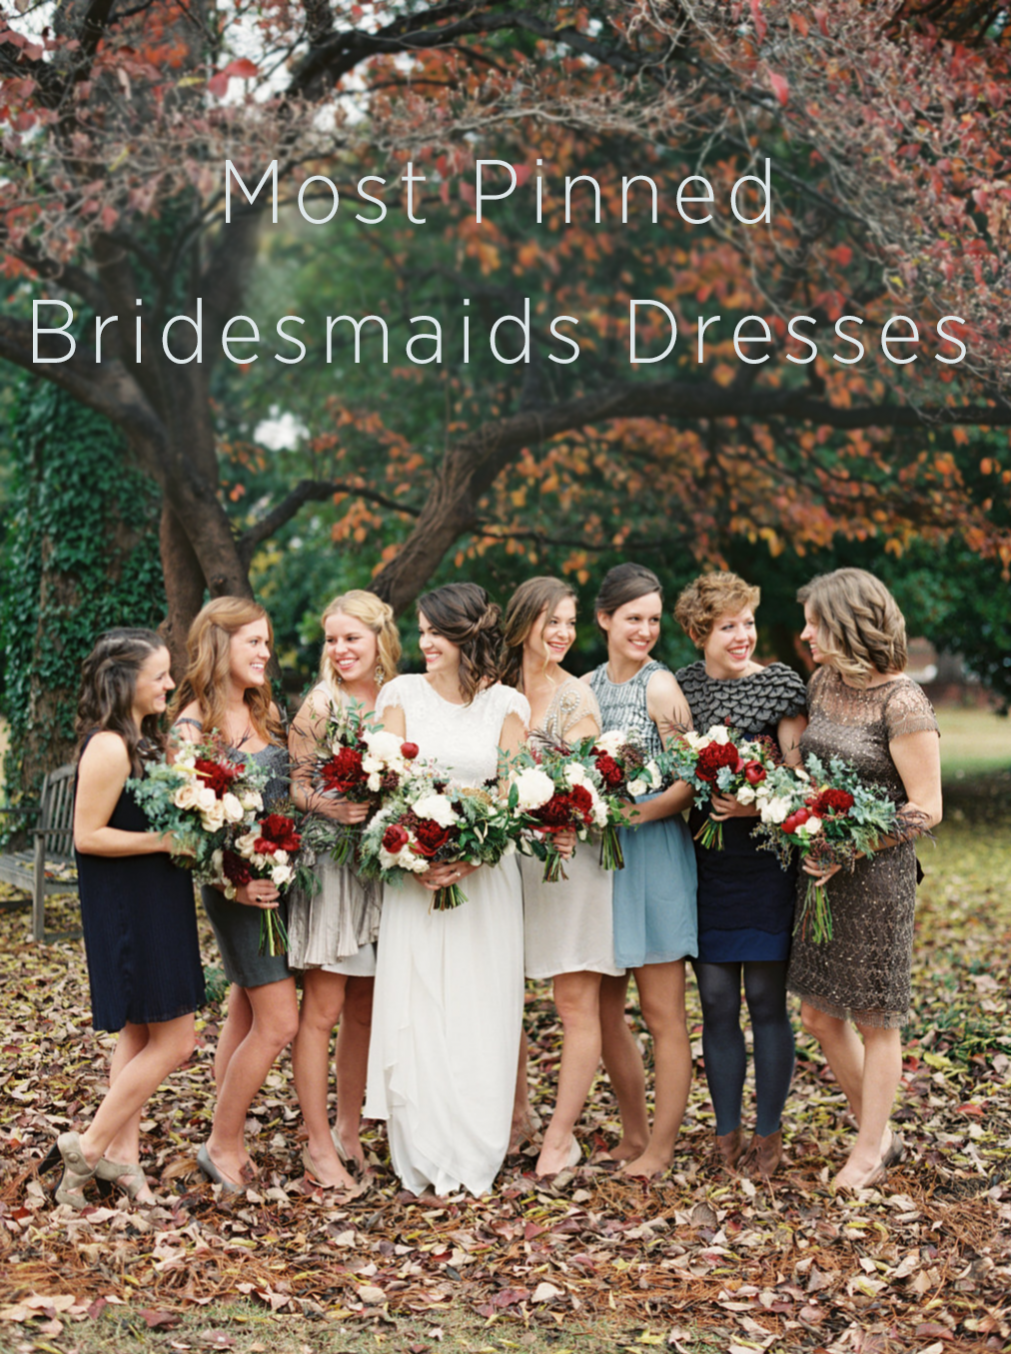 Most Pinned Bridesmaids Dresses